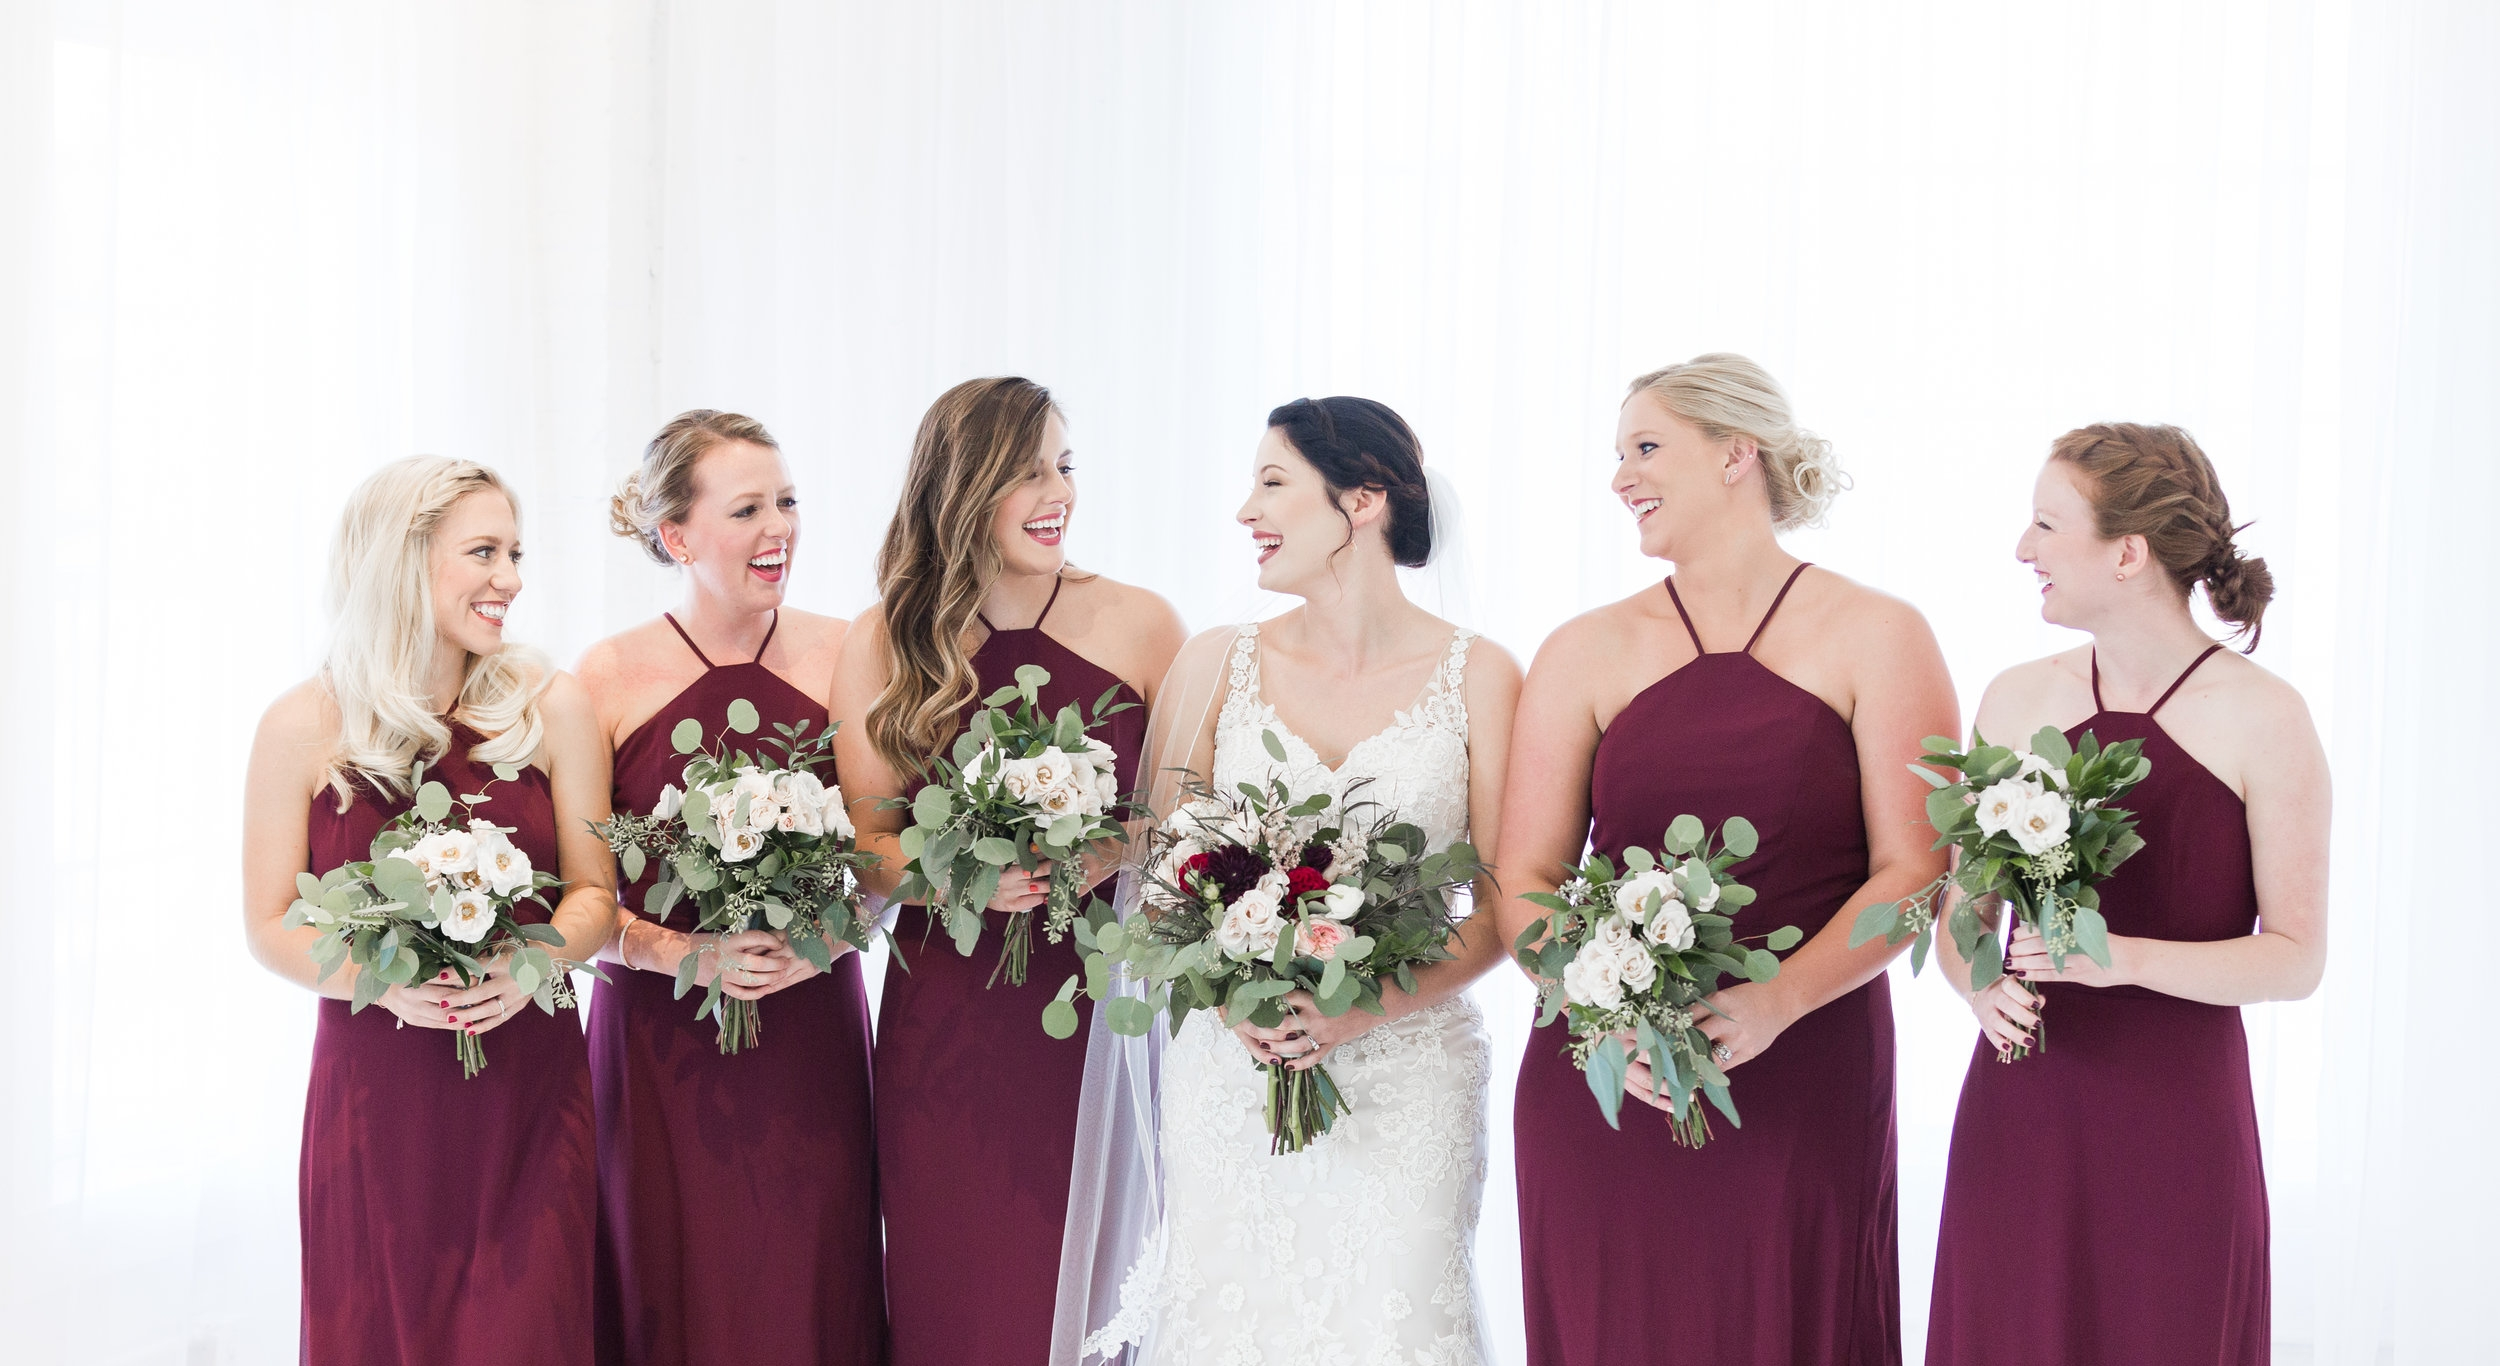 bridal-party-louisville-wedding-photographer-the-belles-photo-belles-bridal-room.jpg